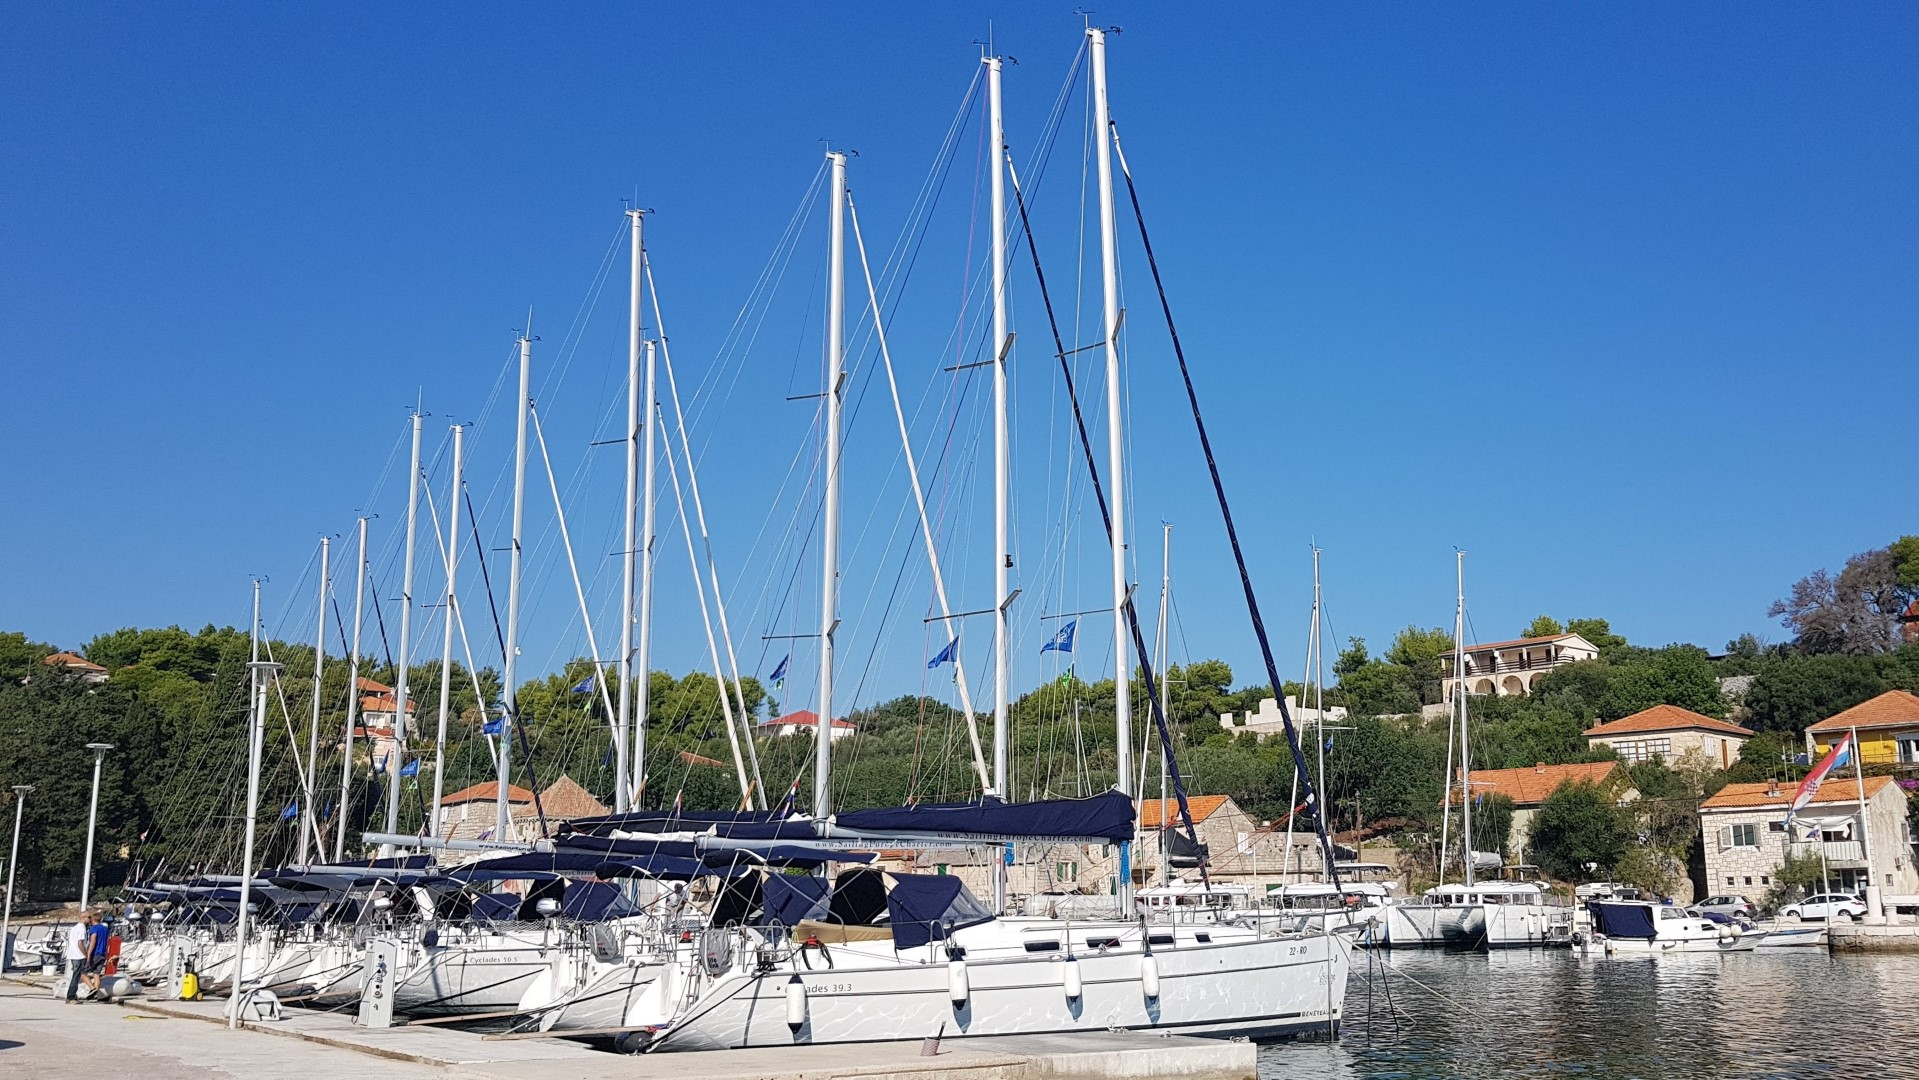 Marina Rogač - sailboats (photo taken 2019)